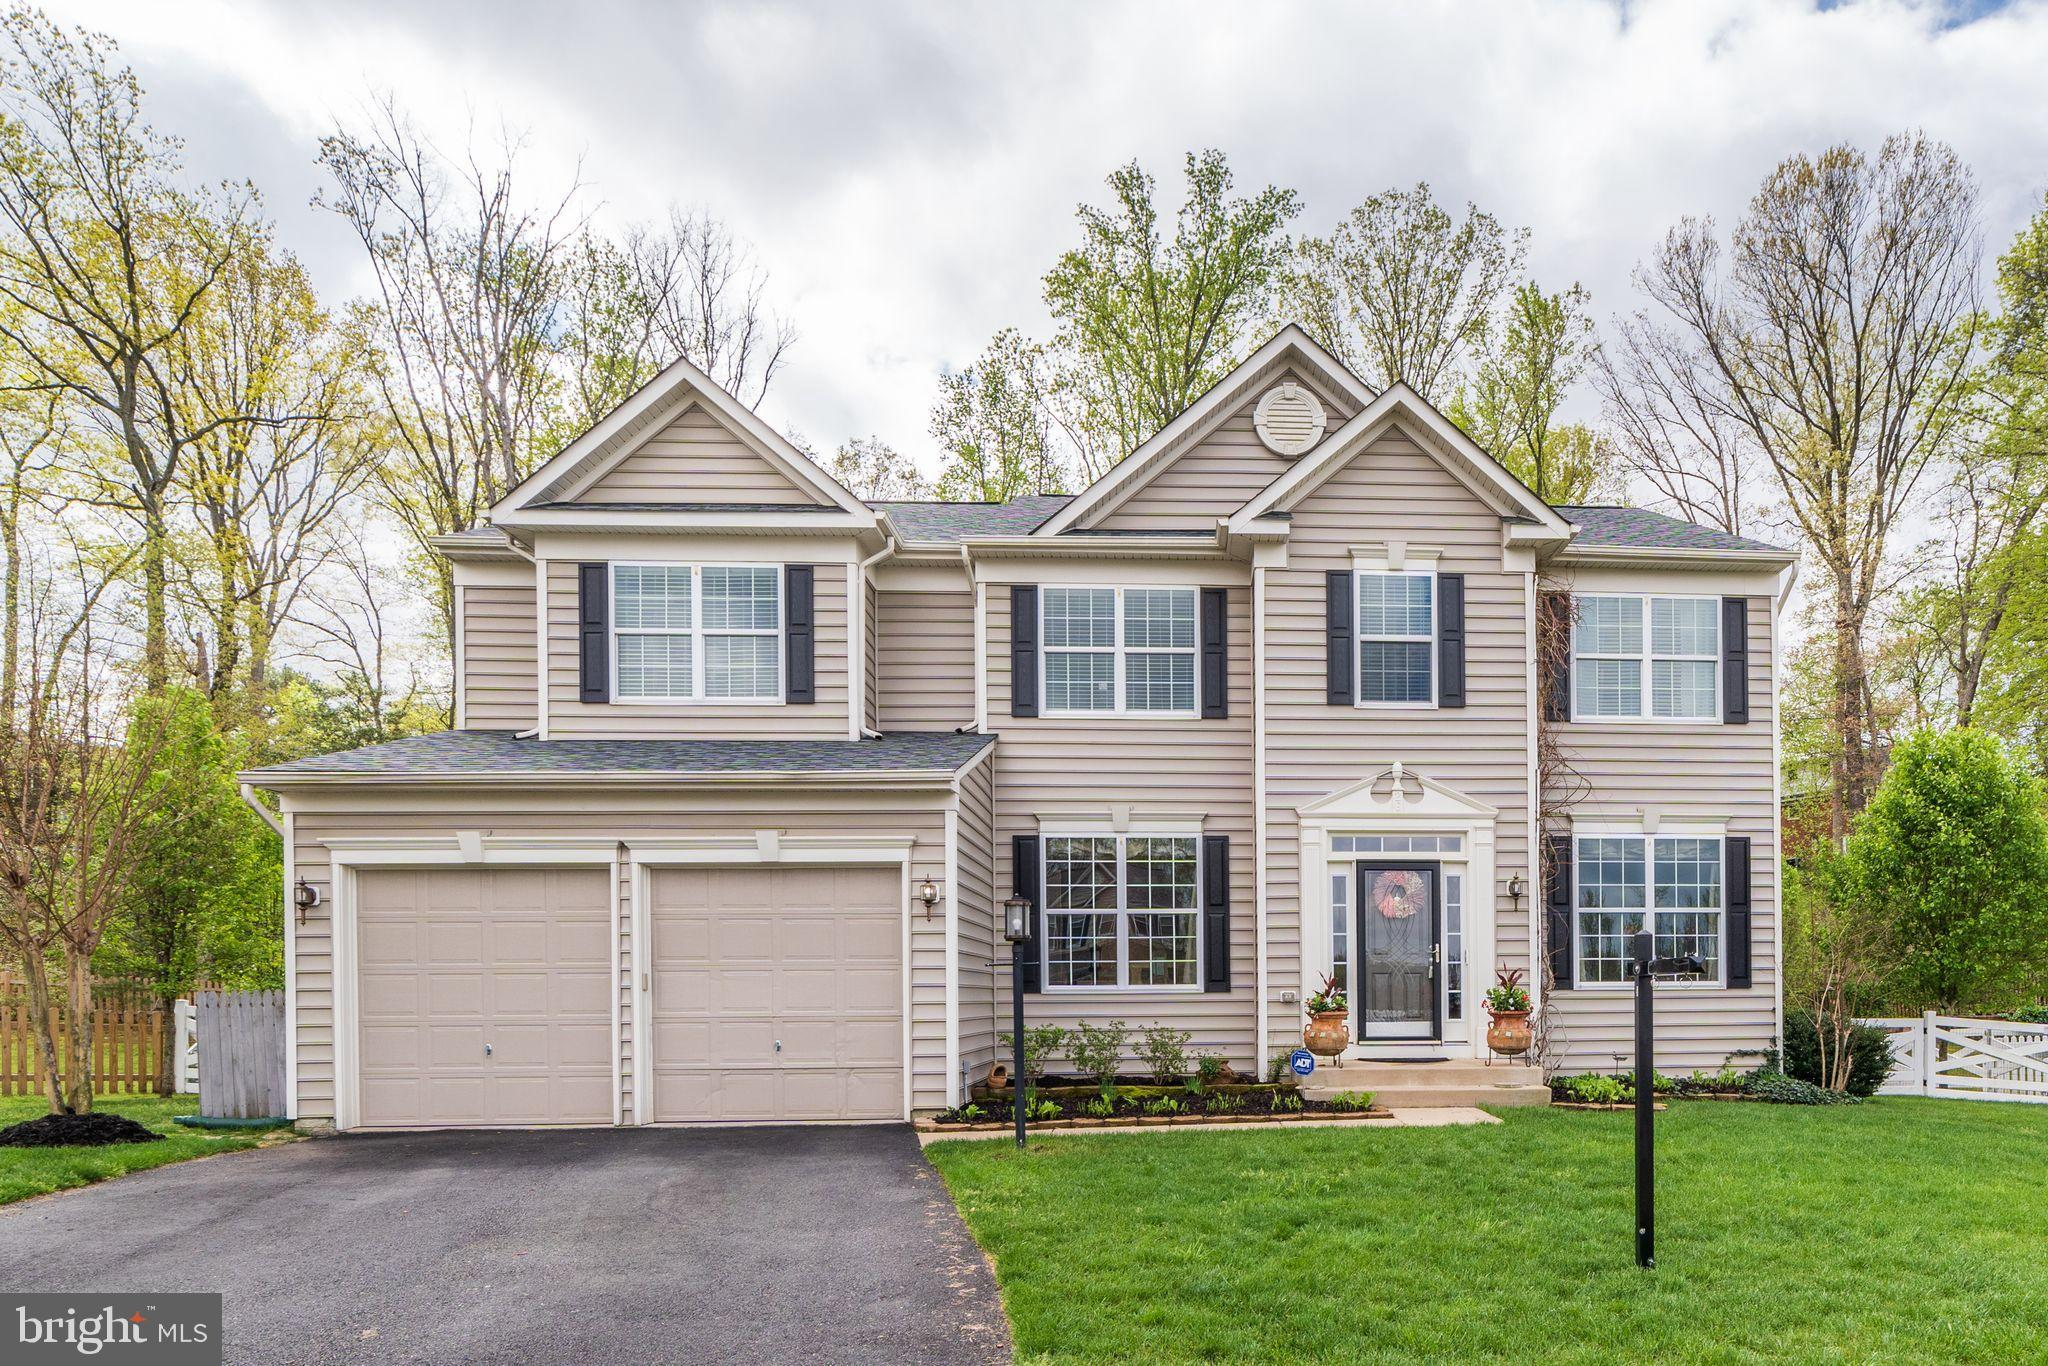 You'll love this stunning 3-story home located in the high ly sought after Leeland Station community